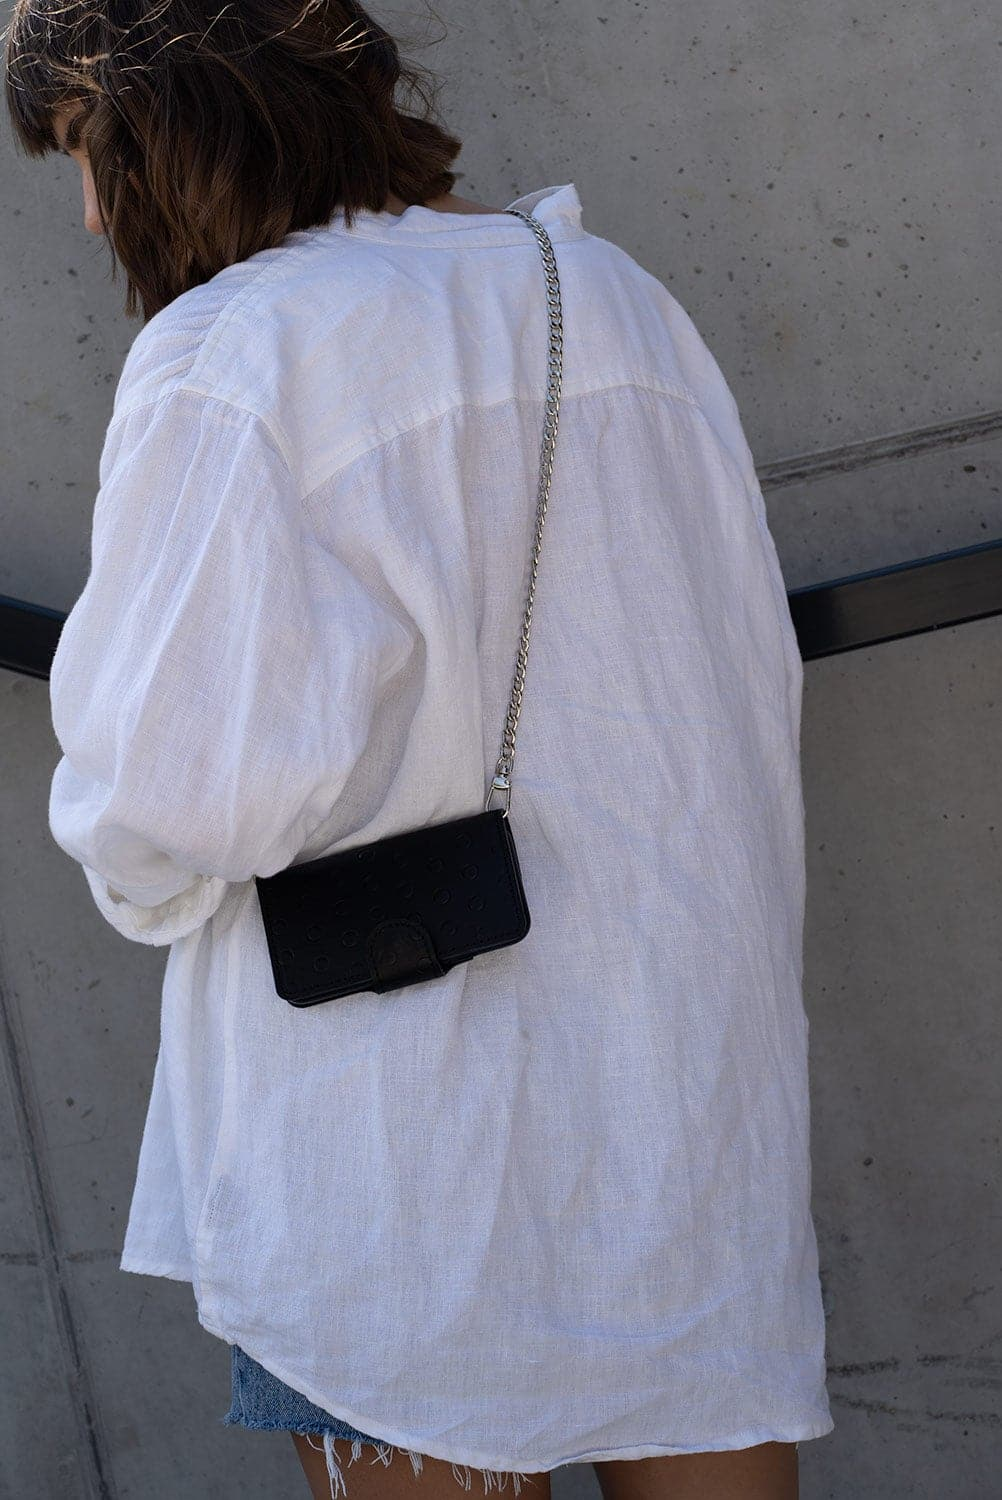 iphone crossbody purse